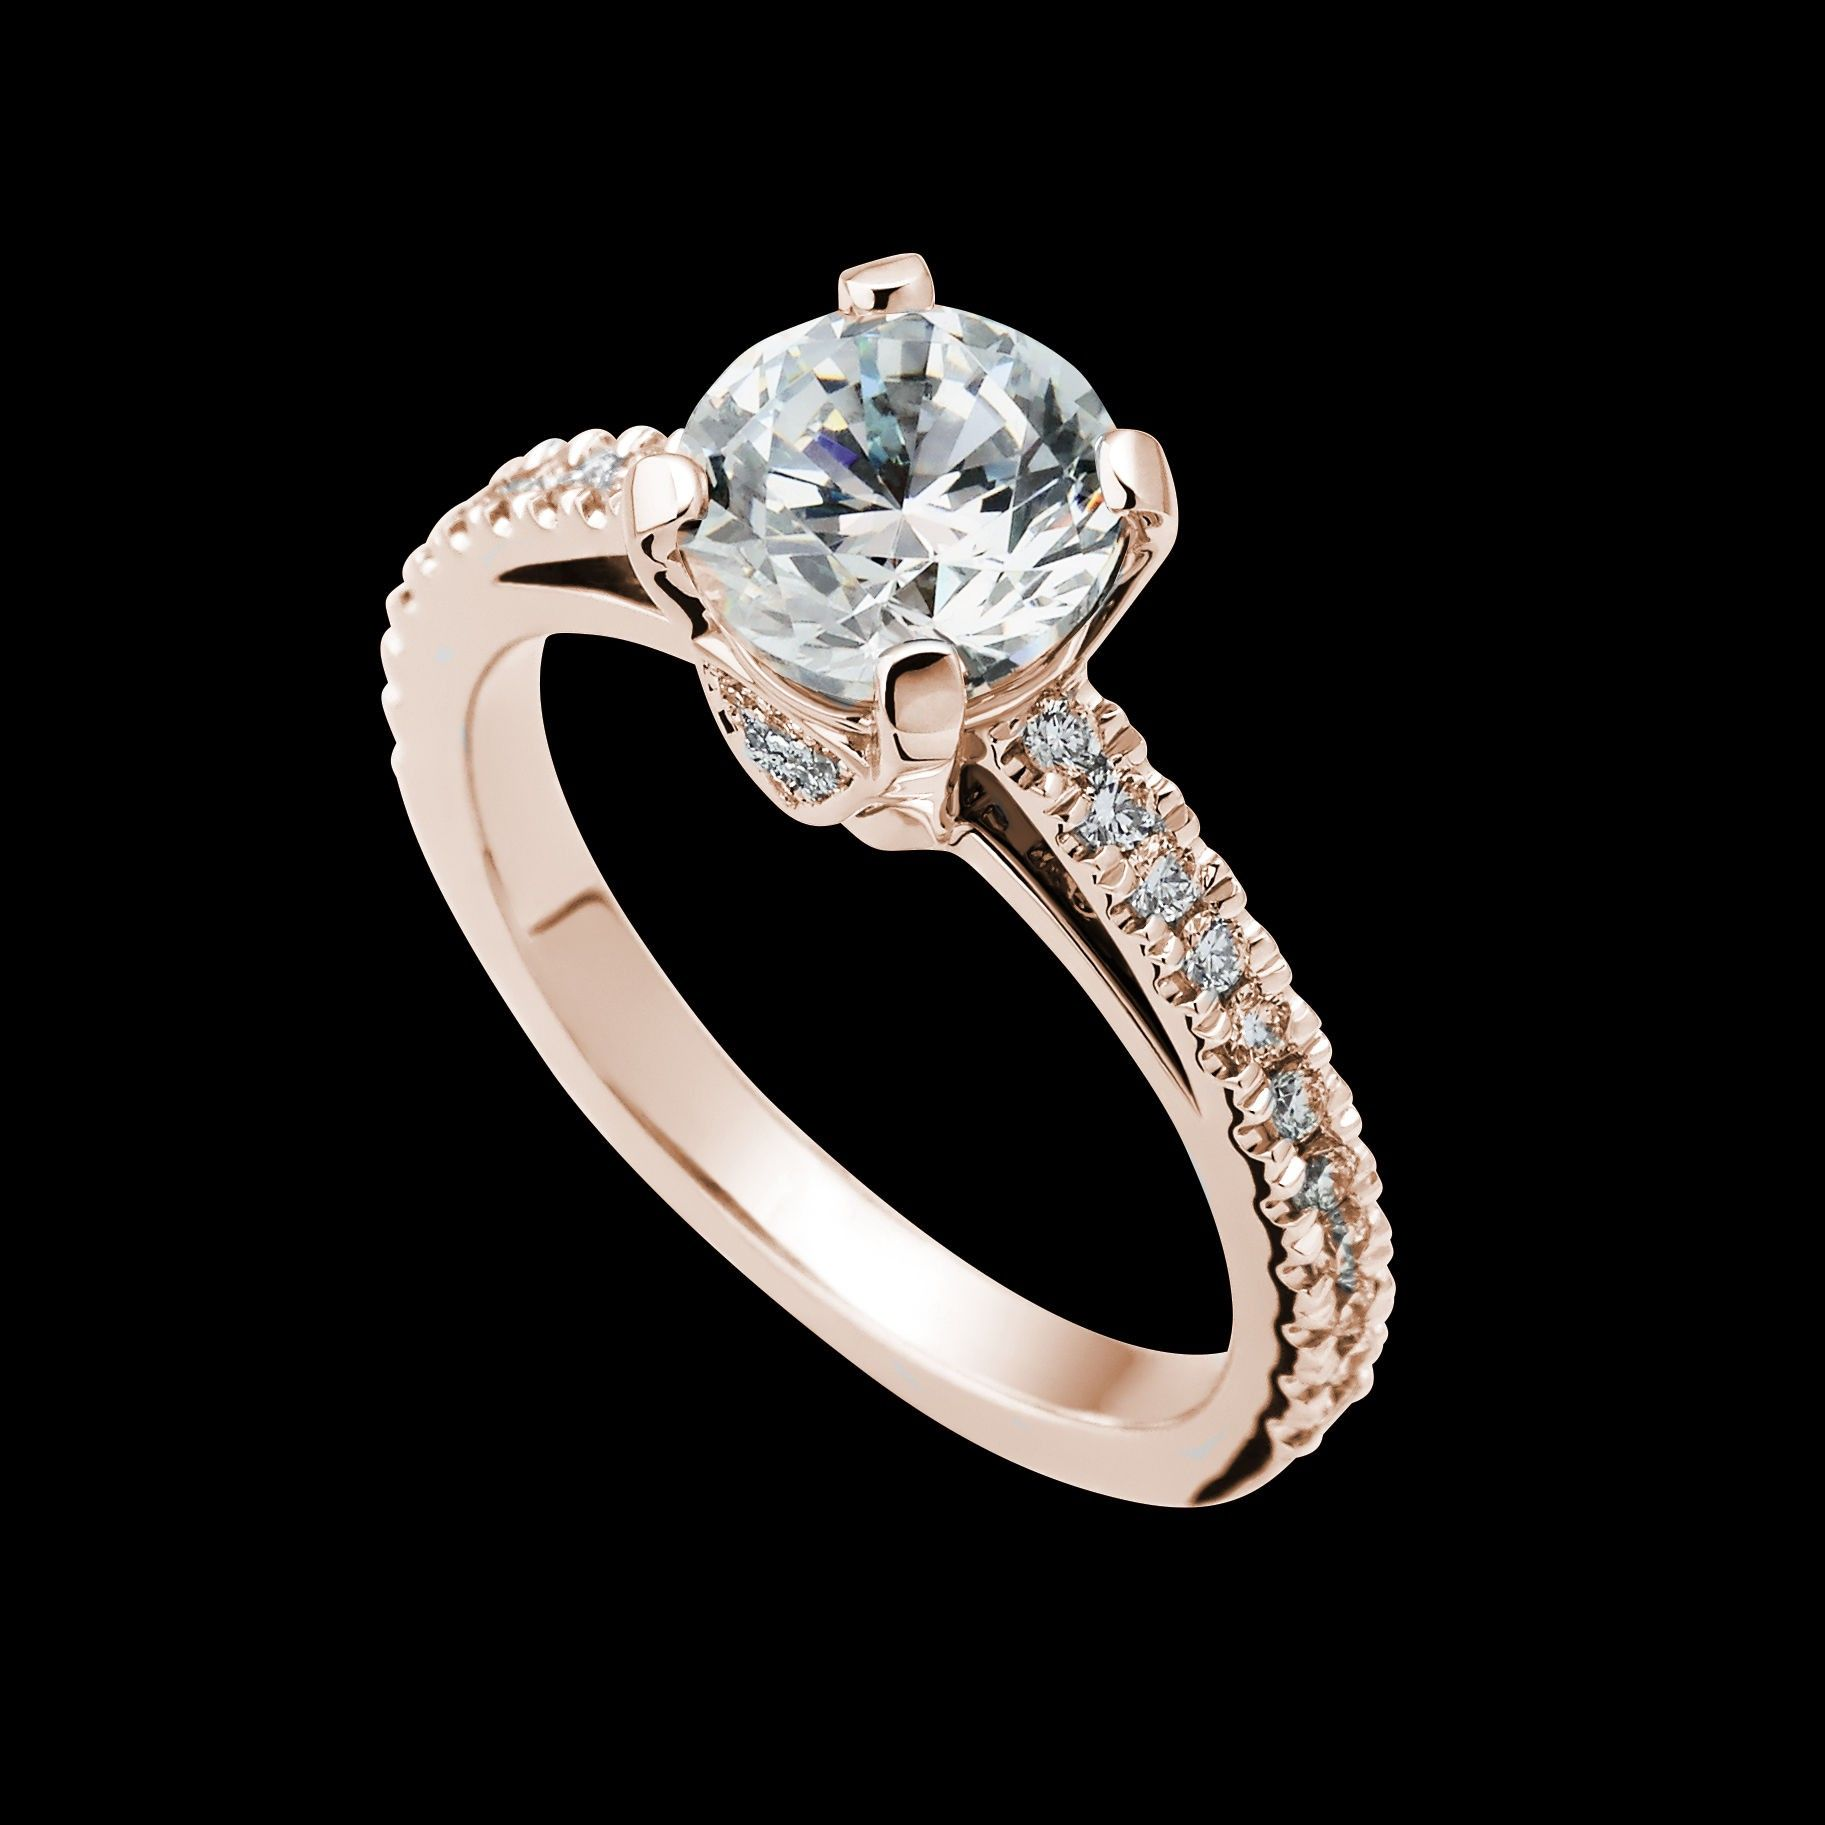 Starburst Engagement Ring Engagement rings, Stunning